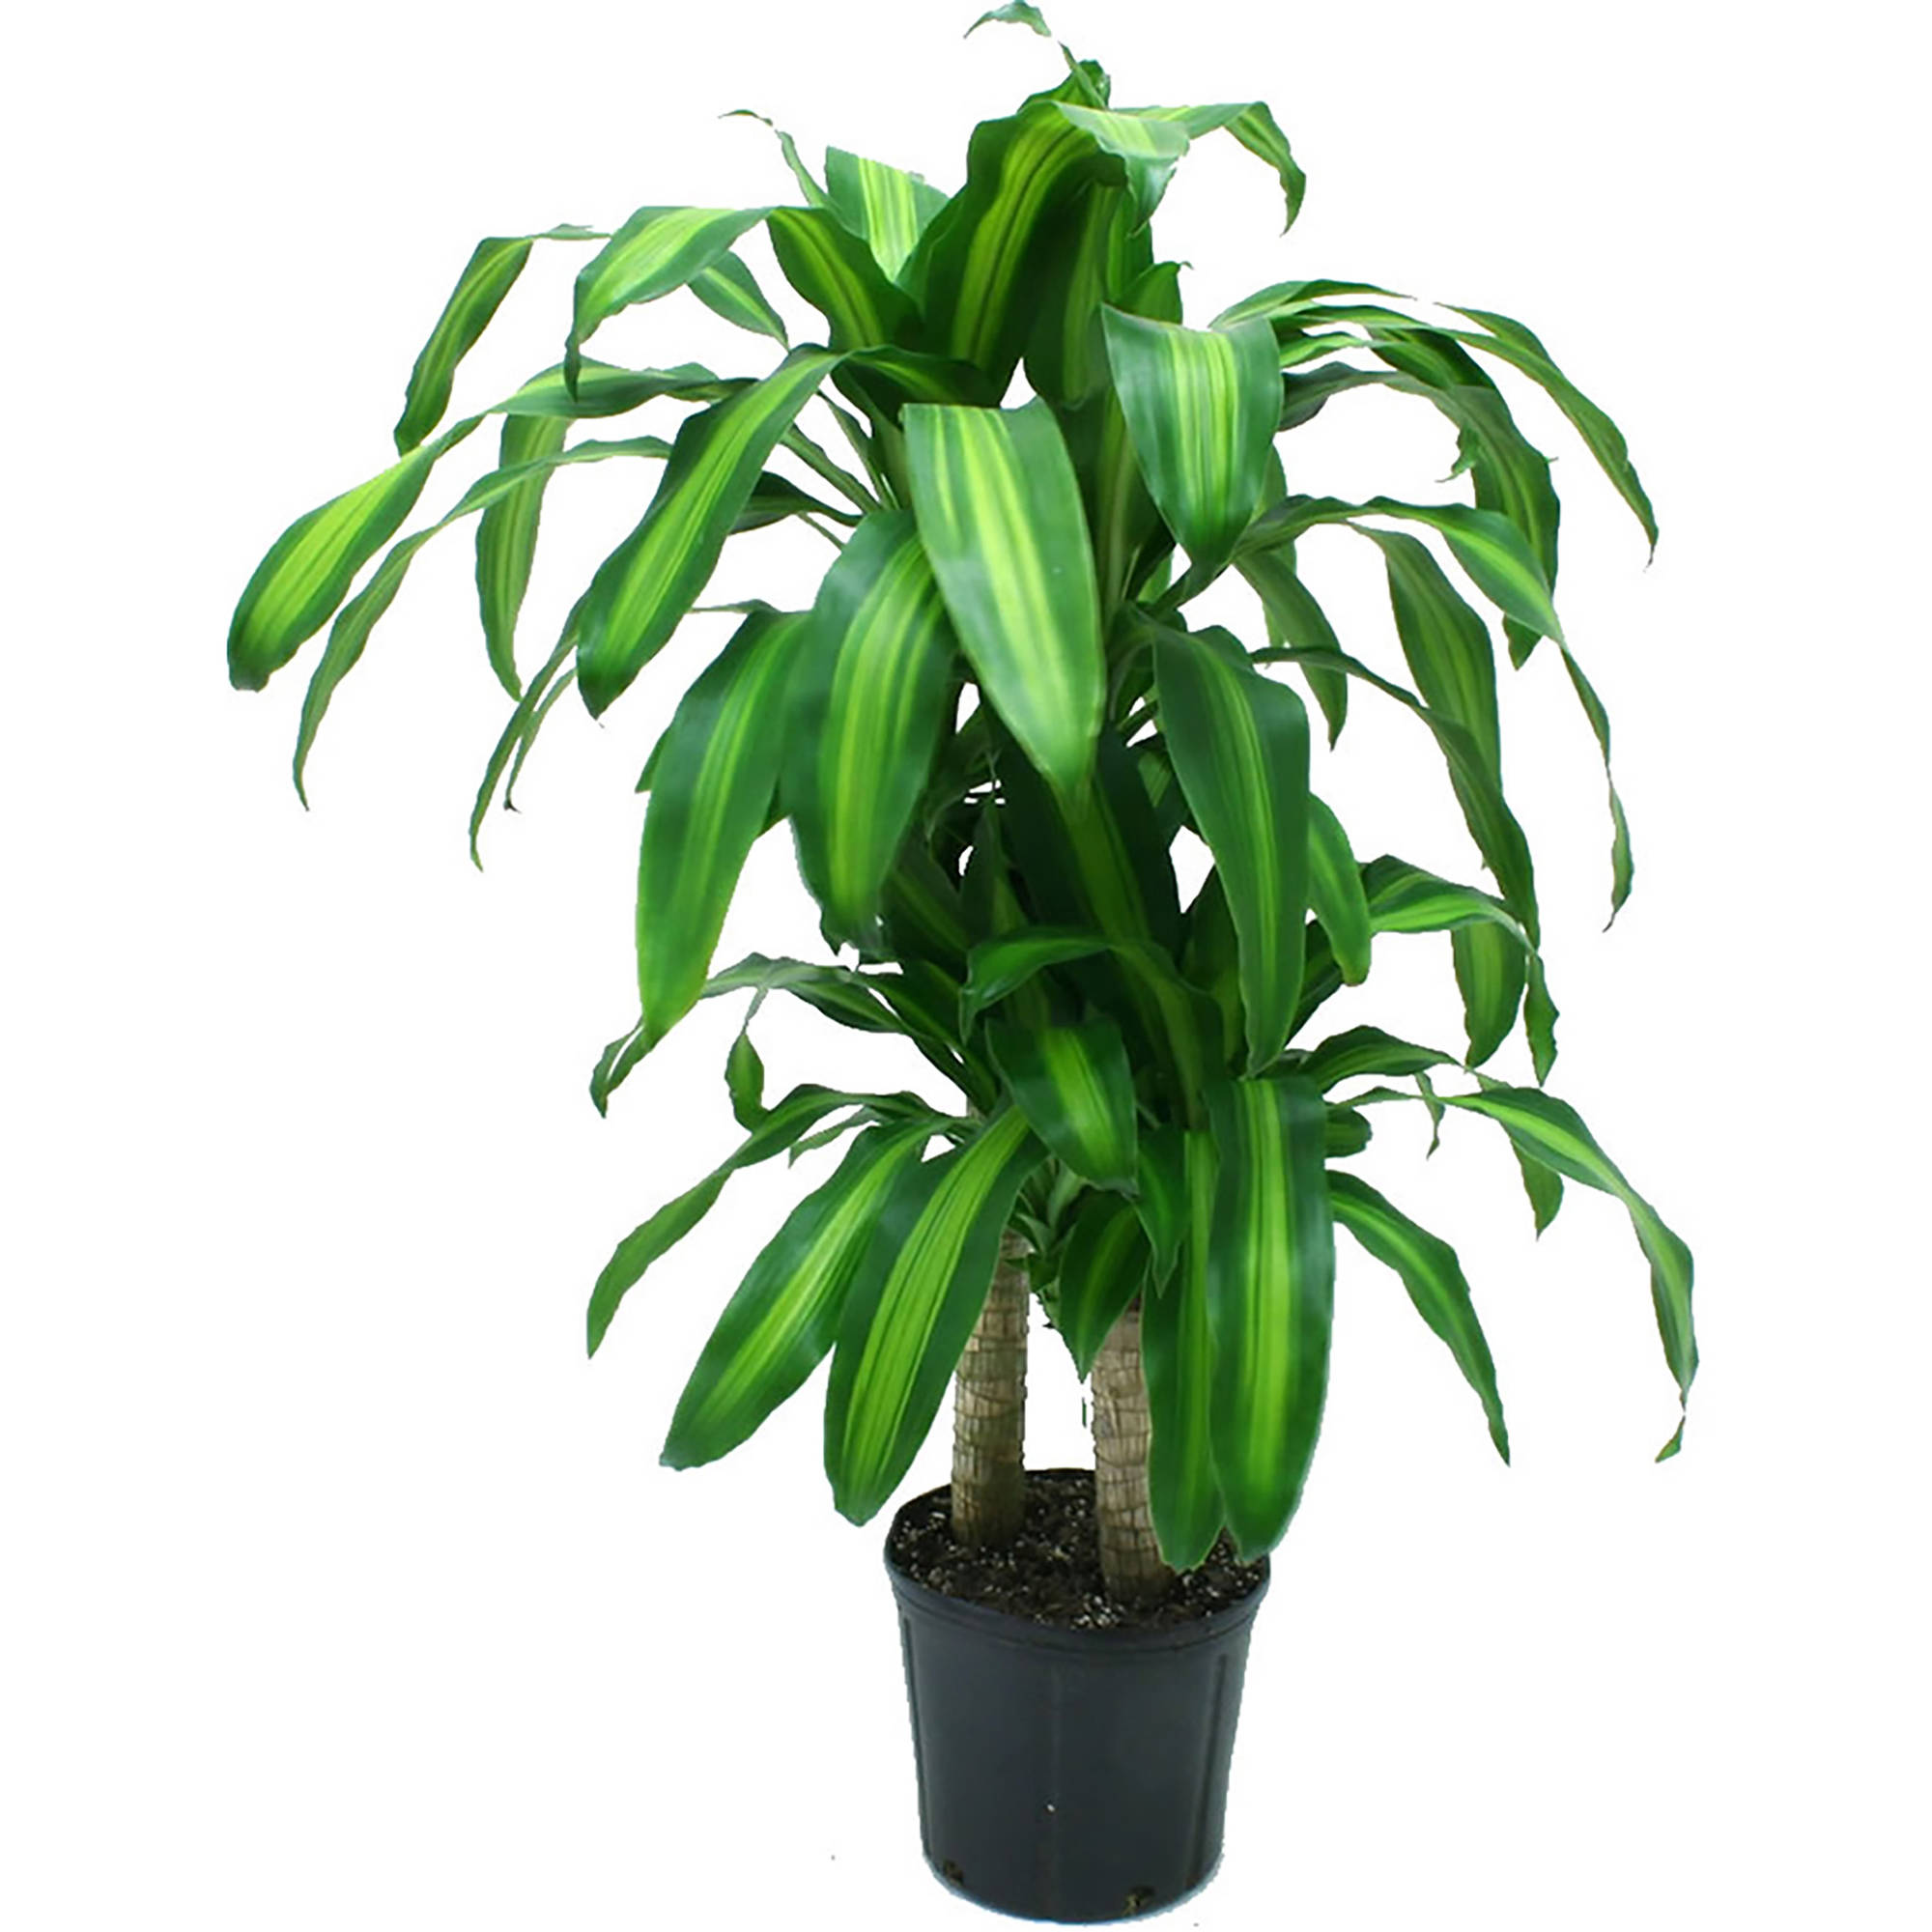 Delray Plants Mass Cane (Dracaena fragrans) Corn Plant Easy to Grow Live House Plant, 10-inch Grower's Pot